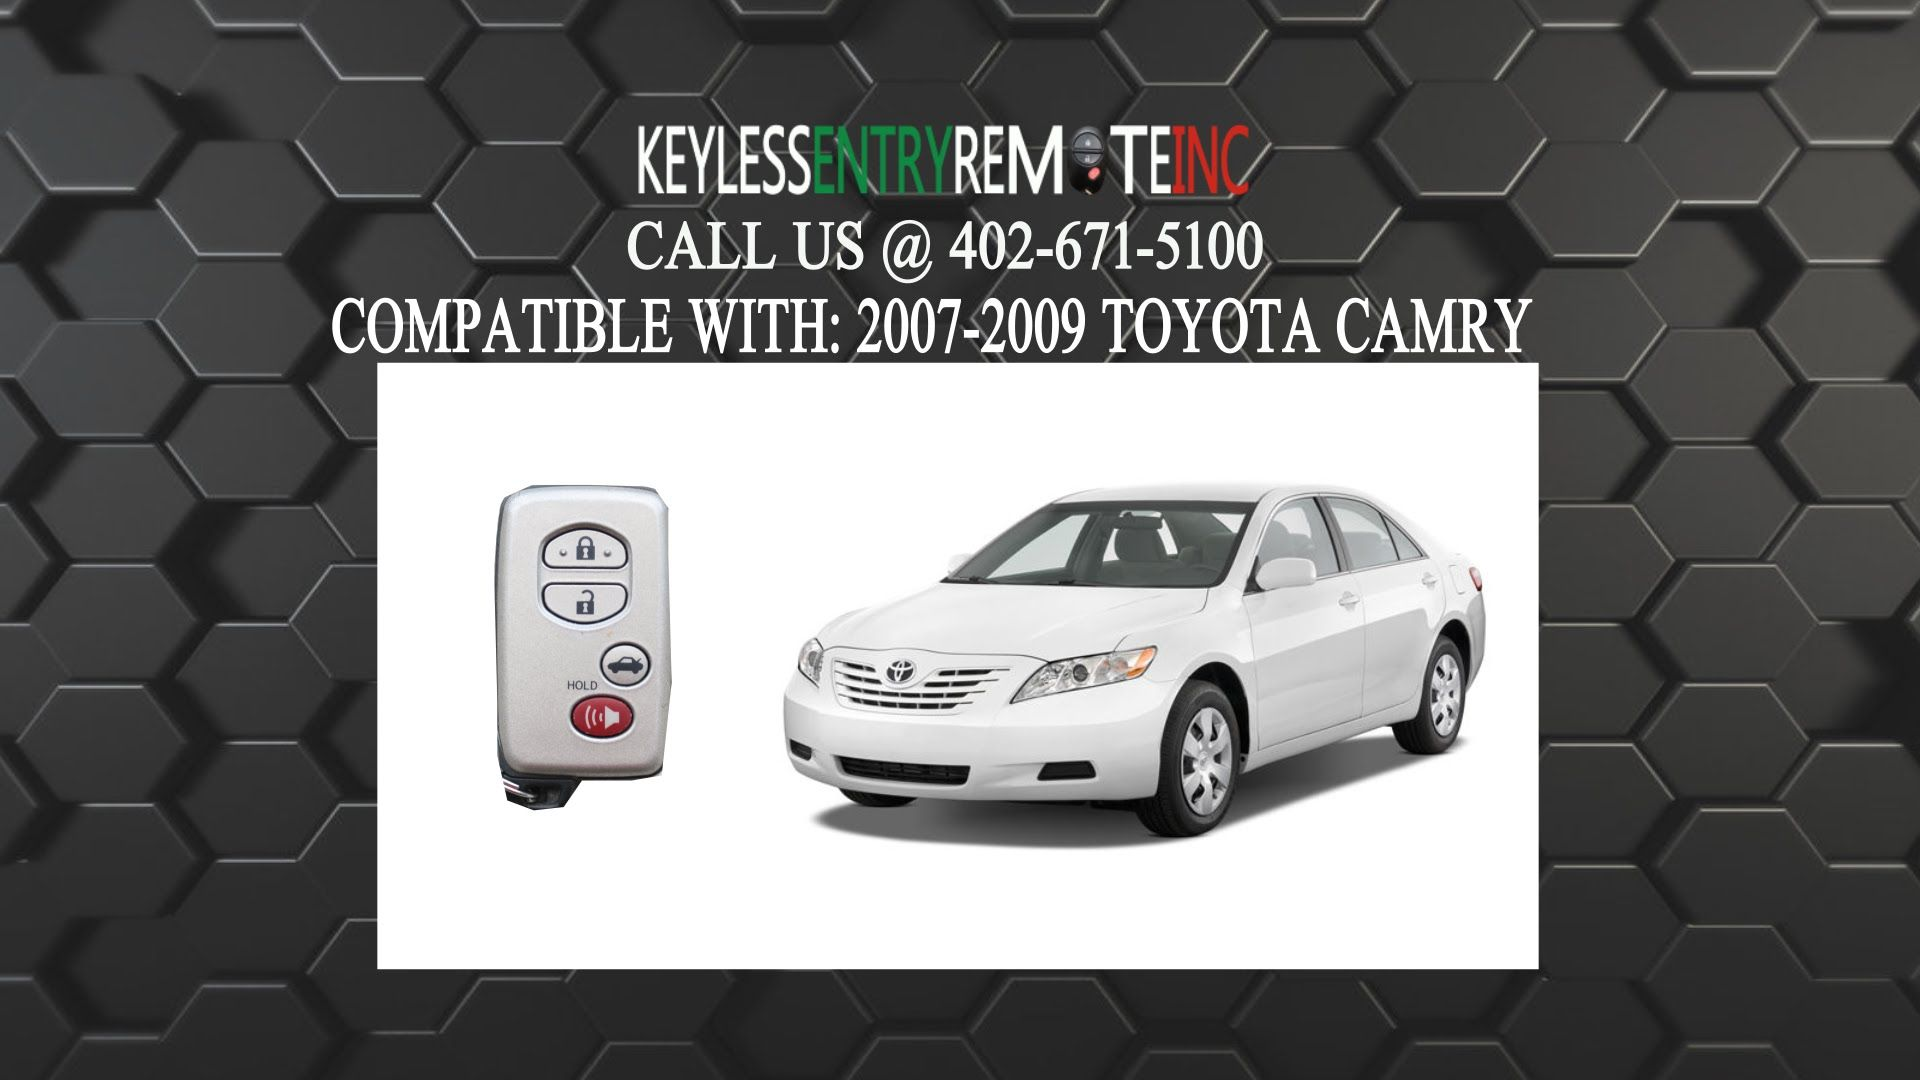 How To Replace Toyota Camry Smart Key Fob Battery 2007 2009